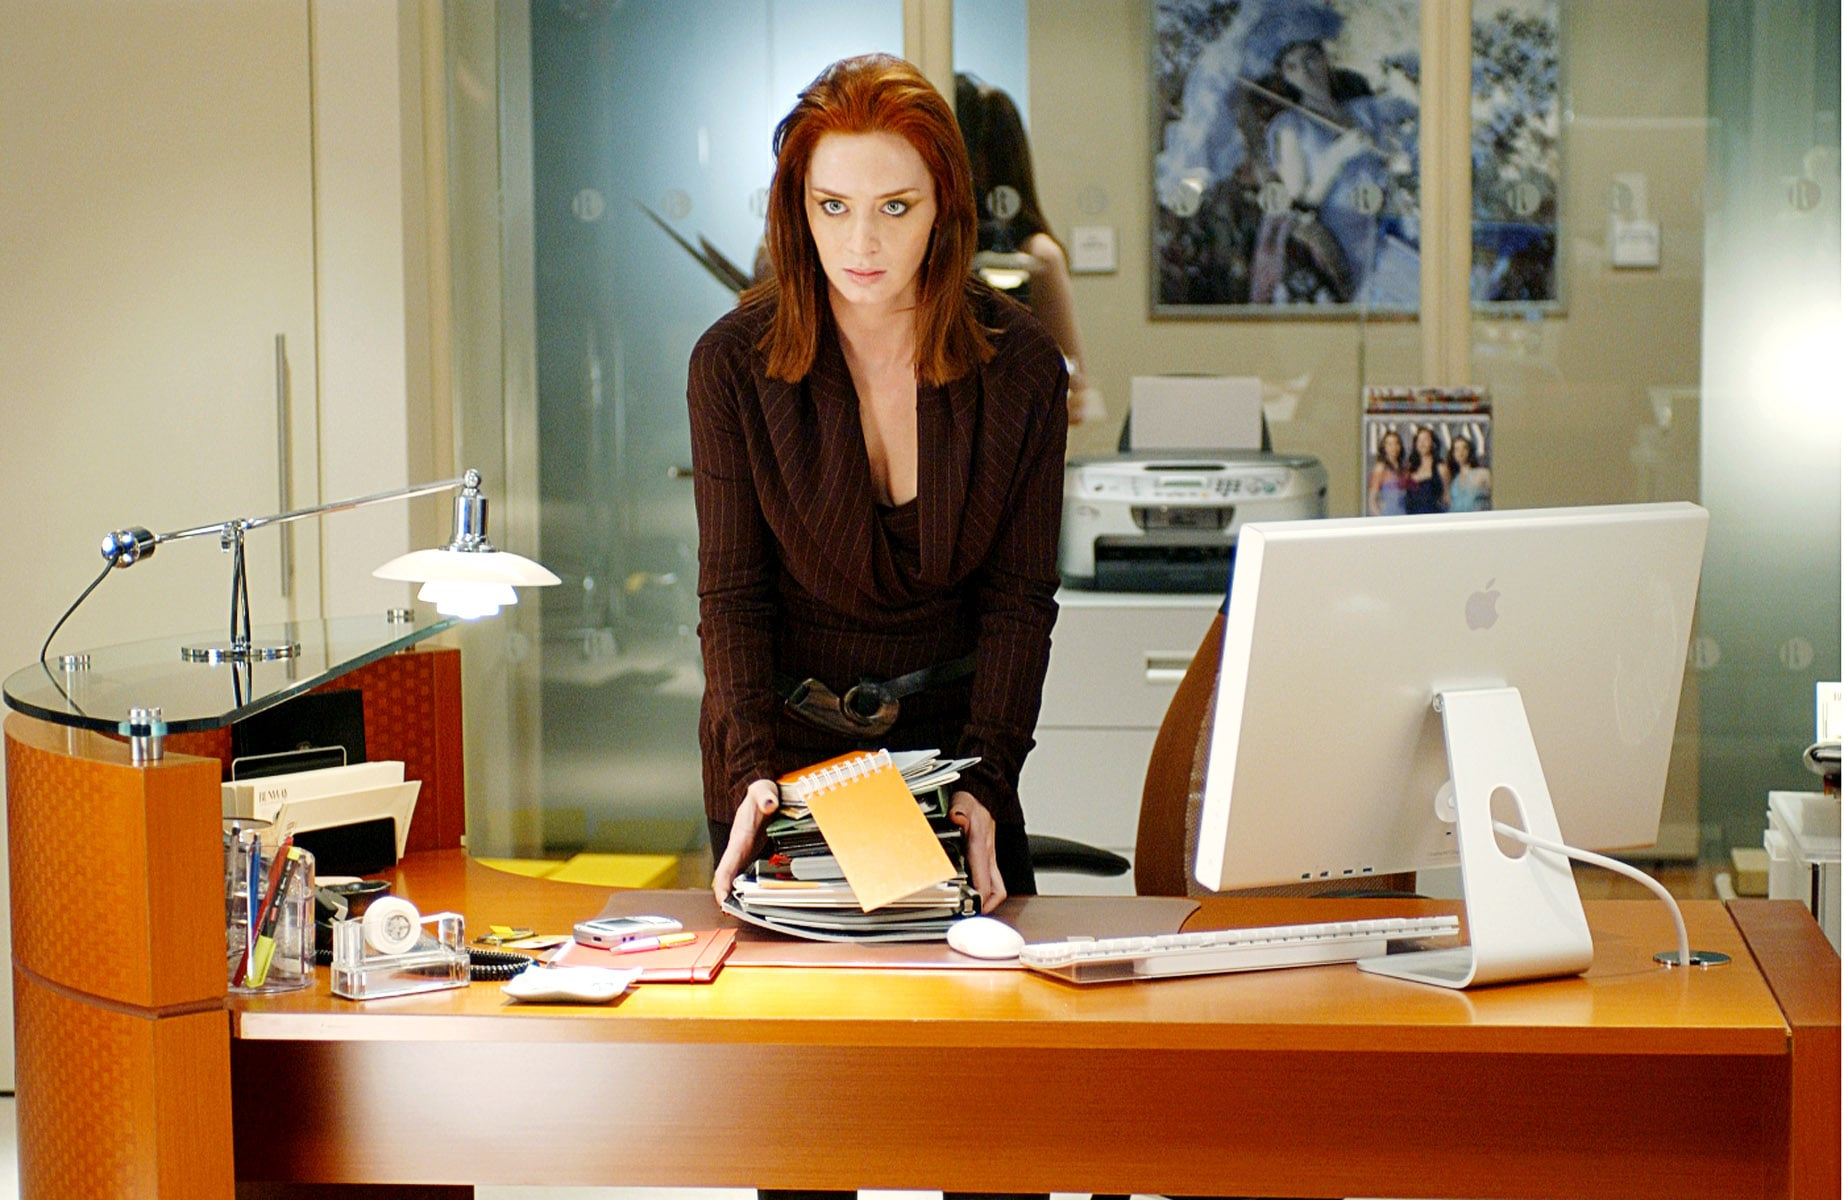 THE DEVIL WEARS PRADA, Emily Blunt, 2006, TM and Copyright  20th Century Fox Film Corp. All rights reserved, Courtesy: Everett Collection